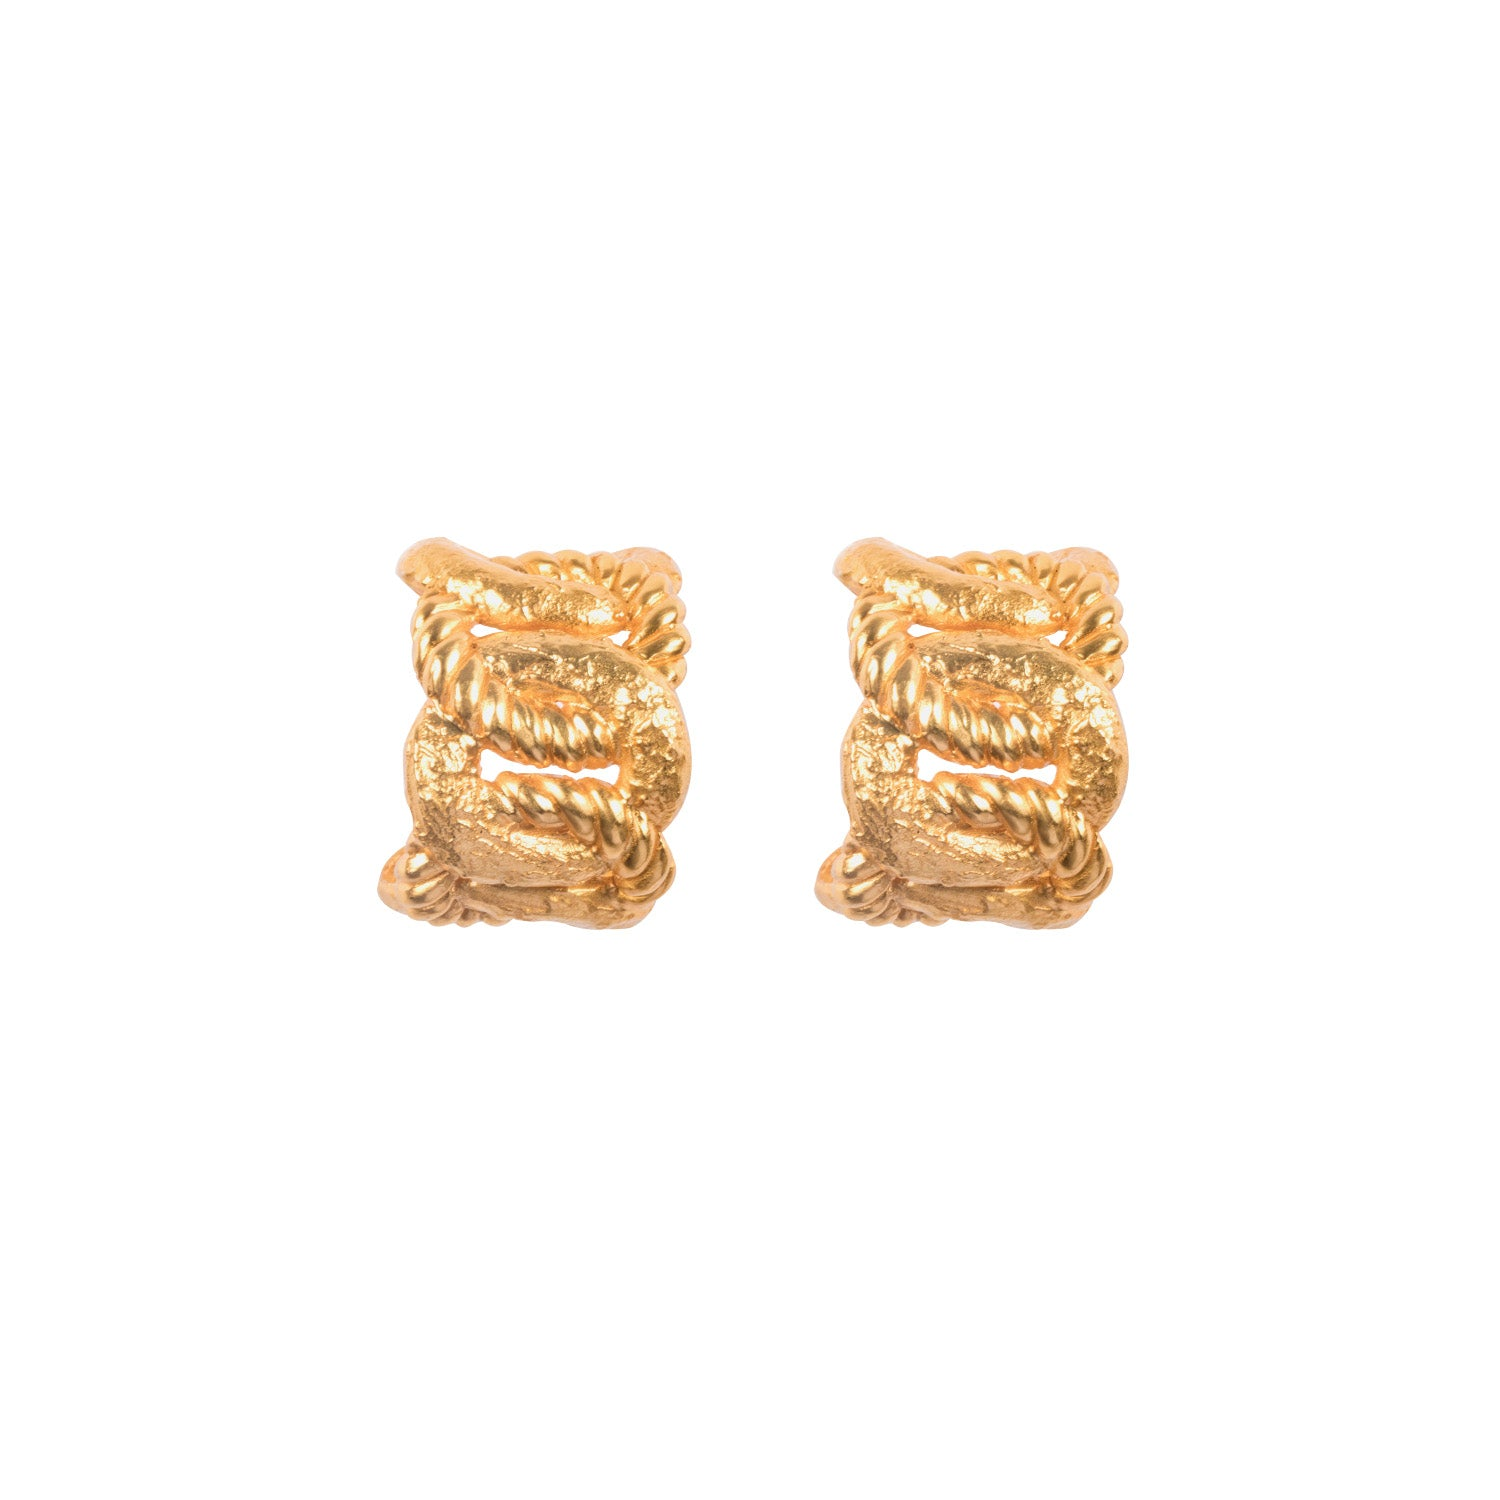 Carpe Deim Earrings (Pre-Order)